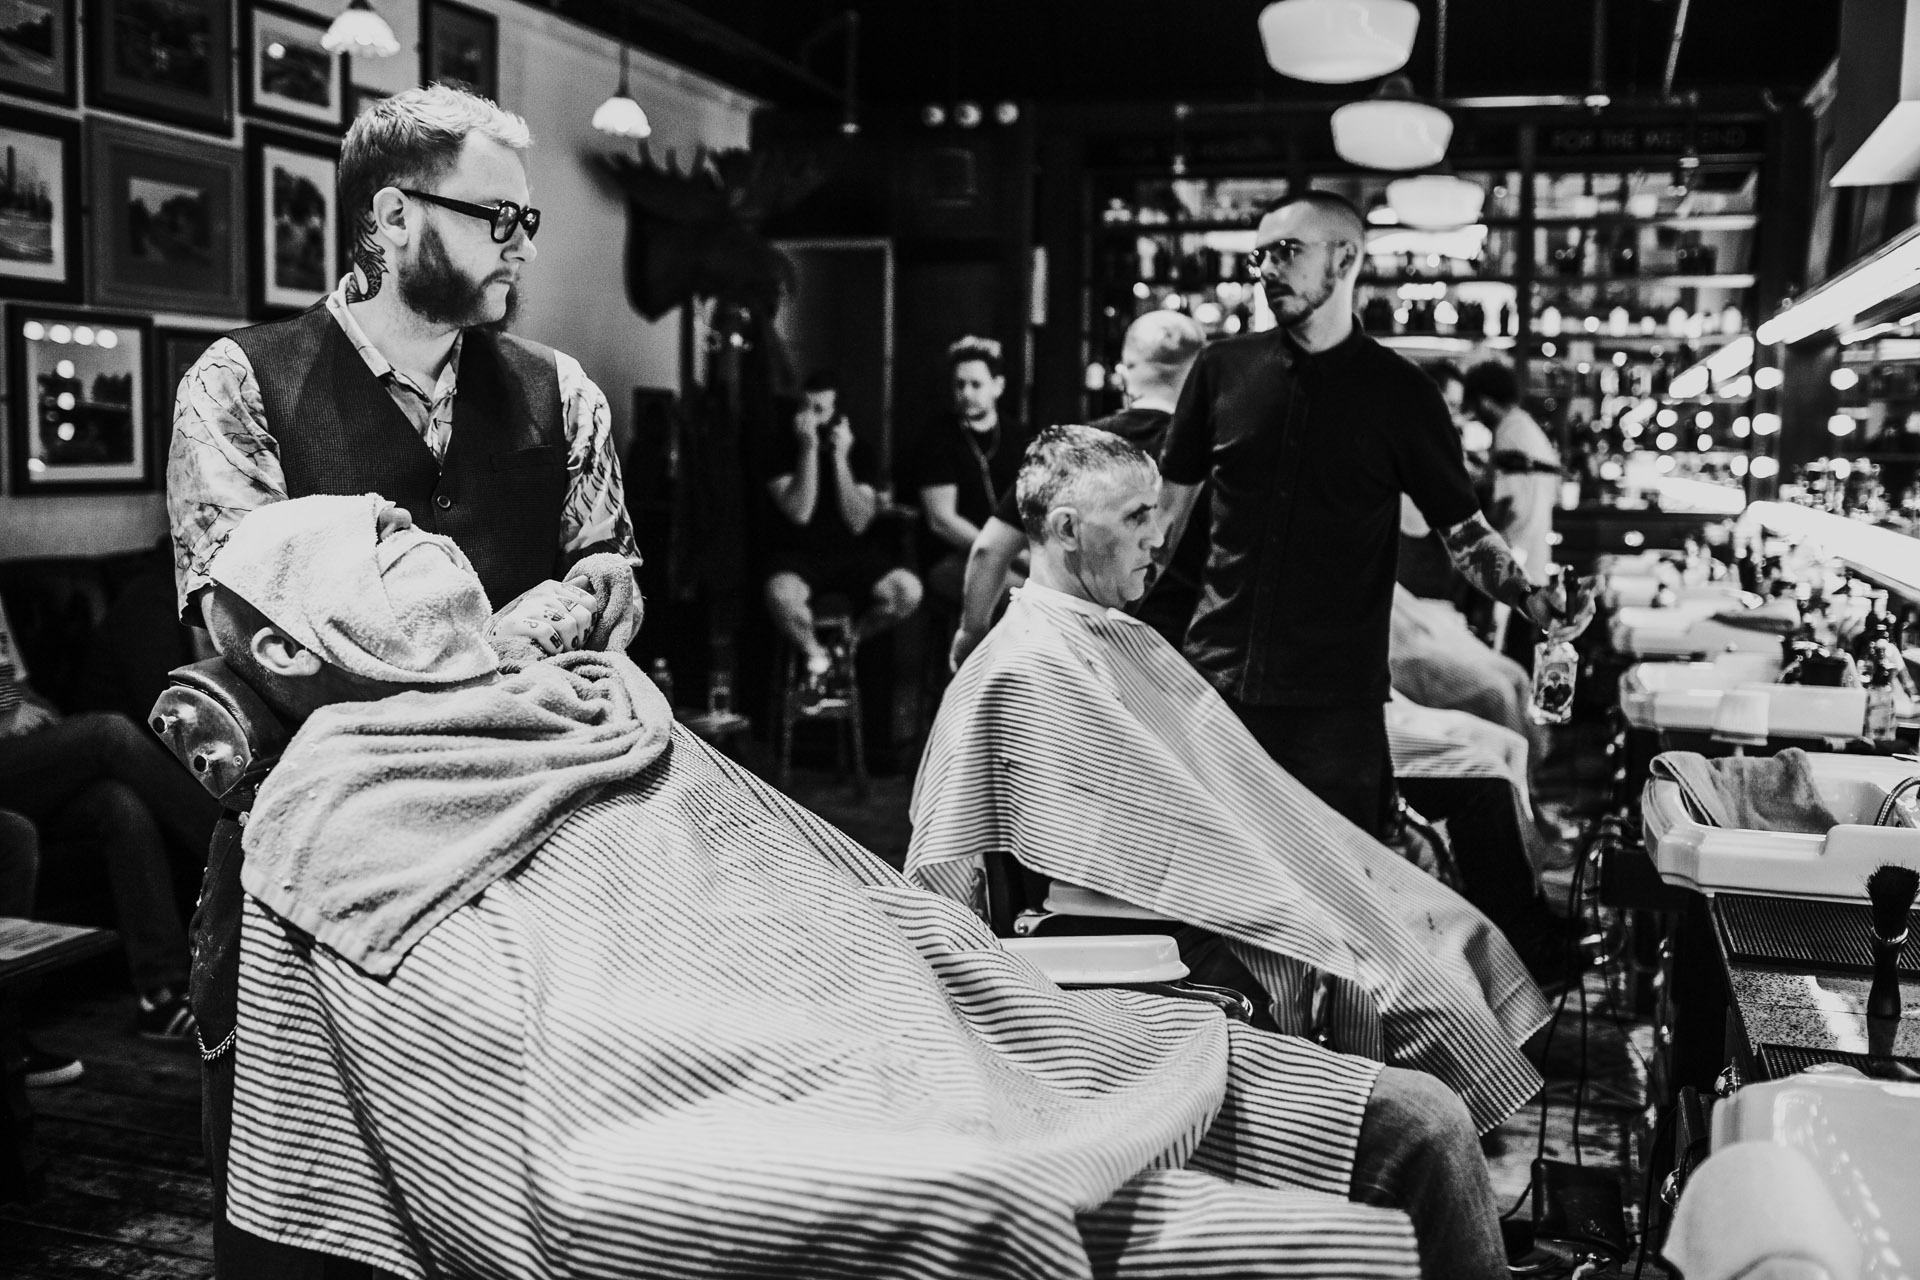 Grooms men getting cut throat shaves in Manchester wedding documentary style photographs